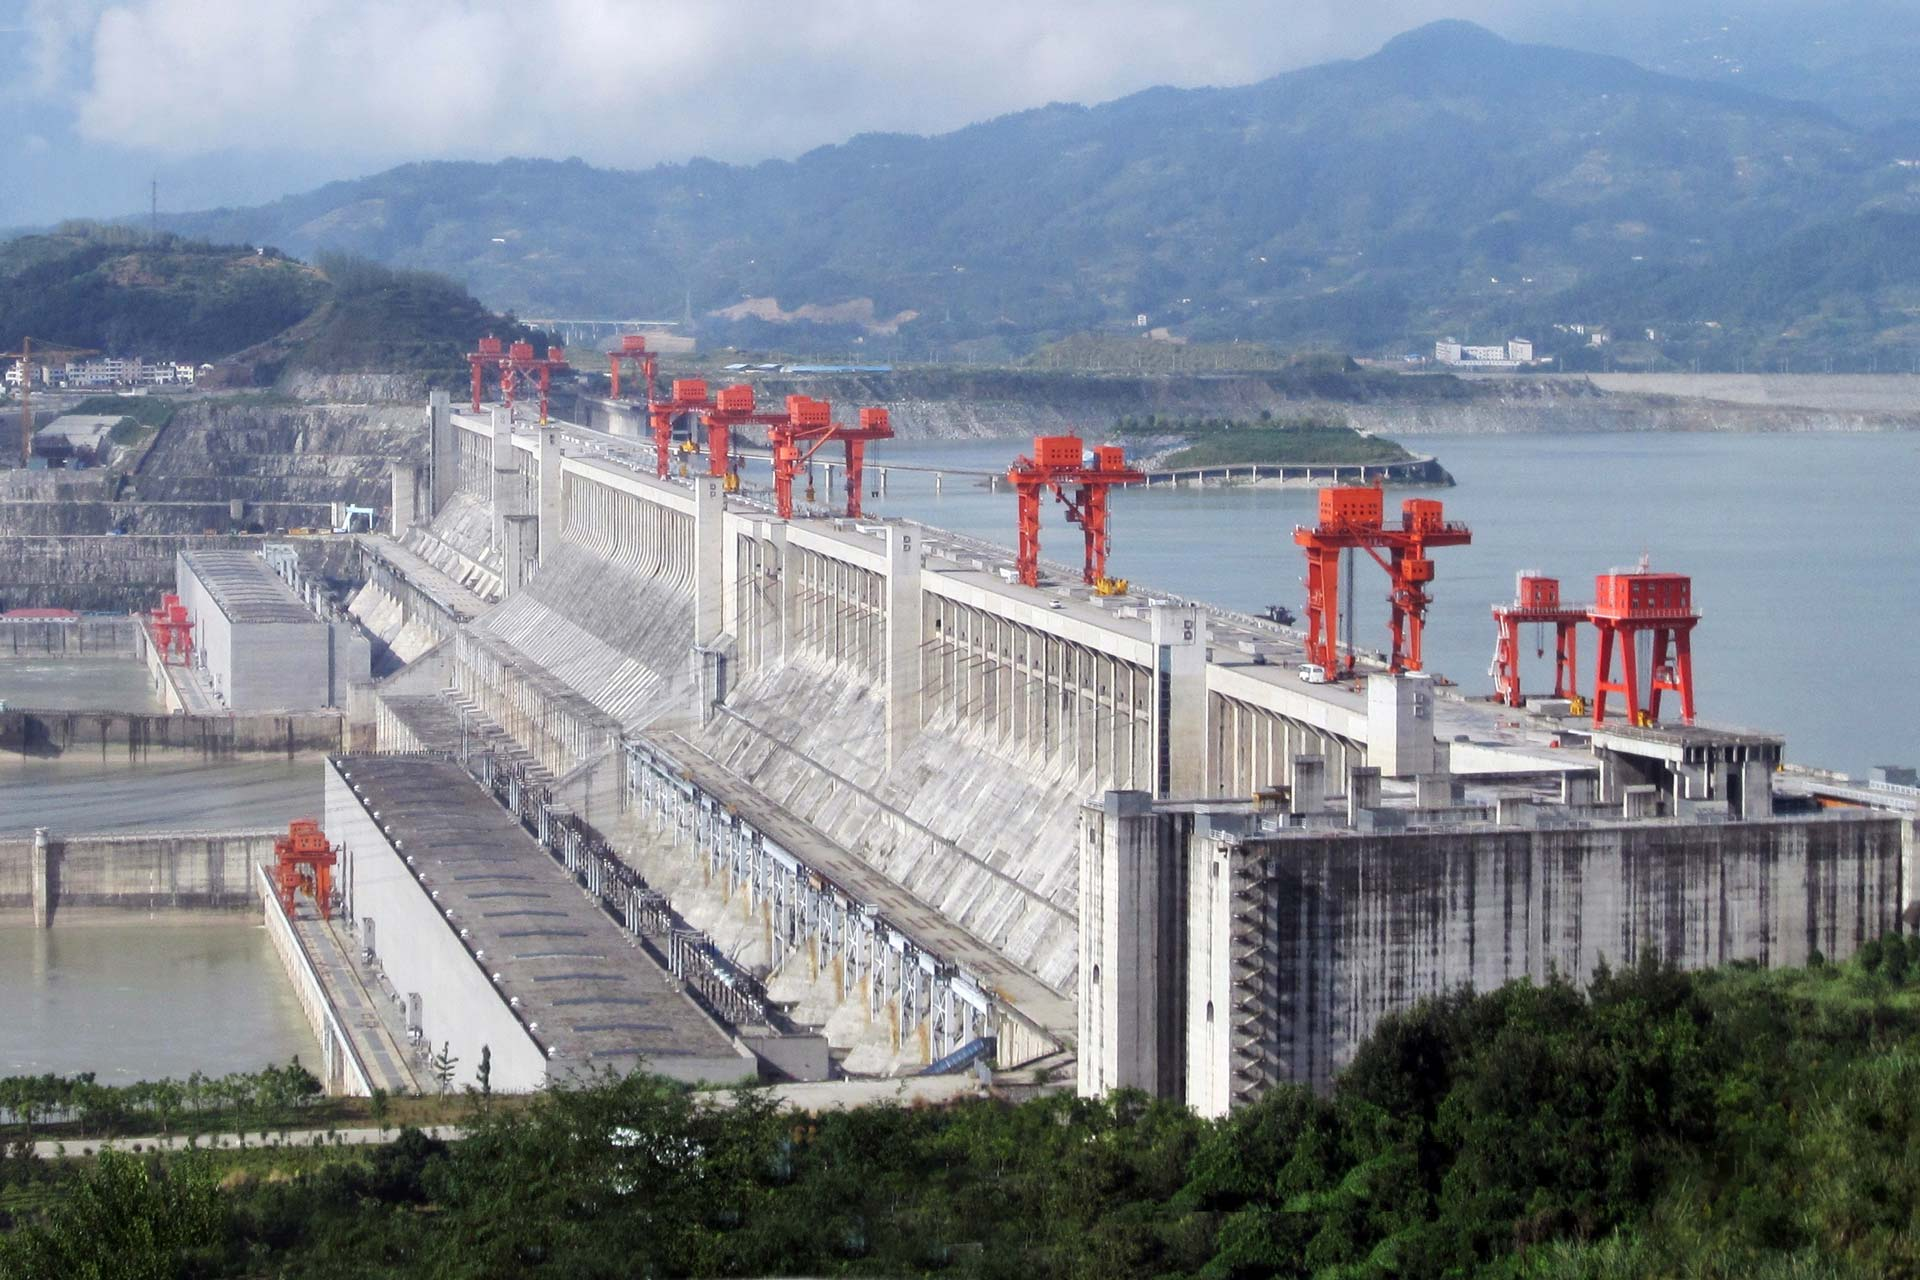 The Three Gorges Dam on the Yangtze River, China.